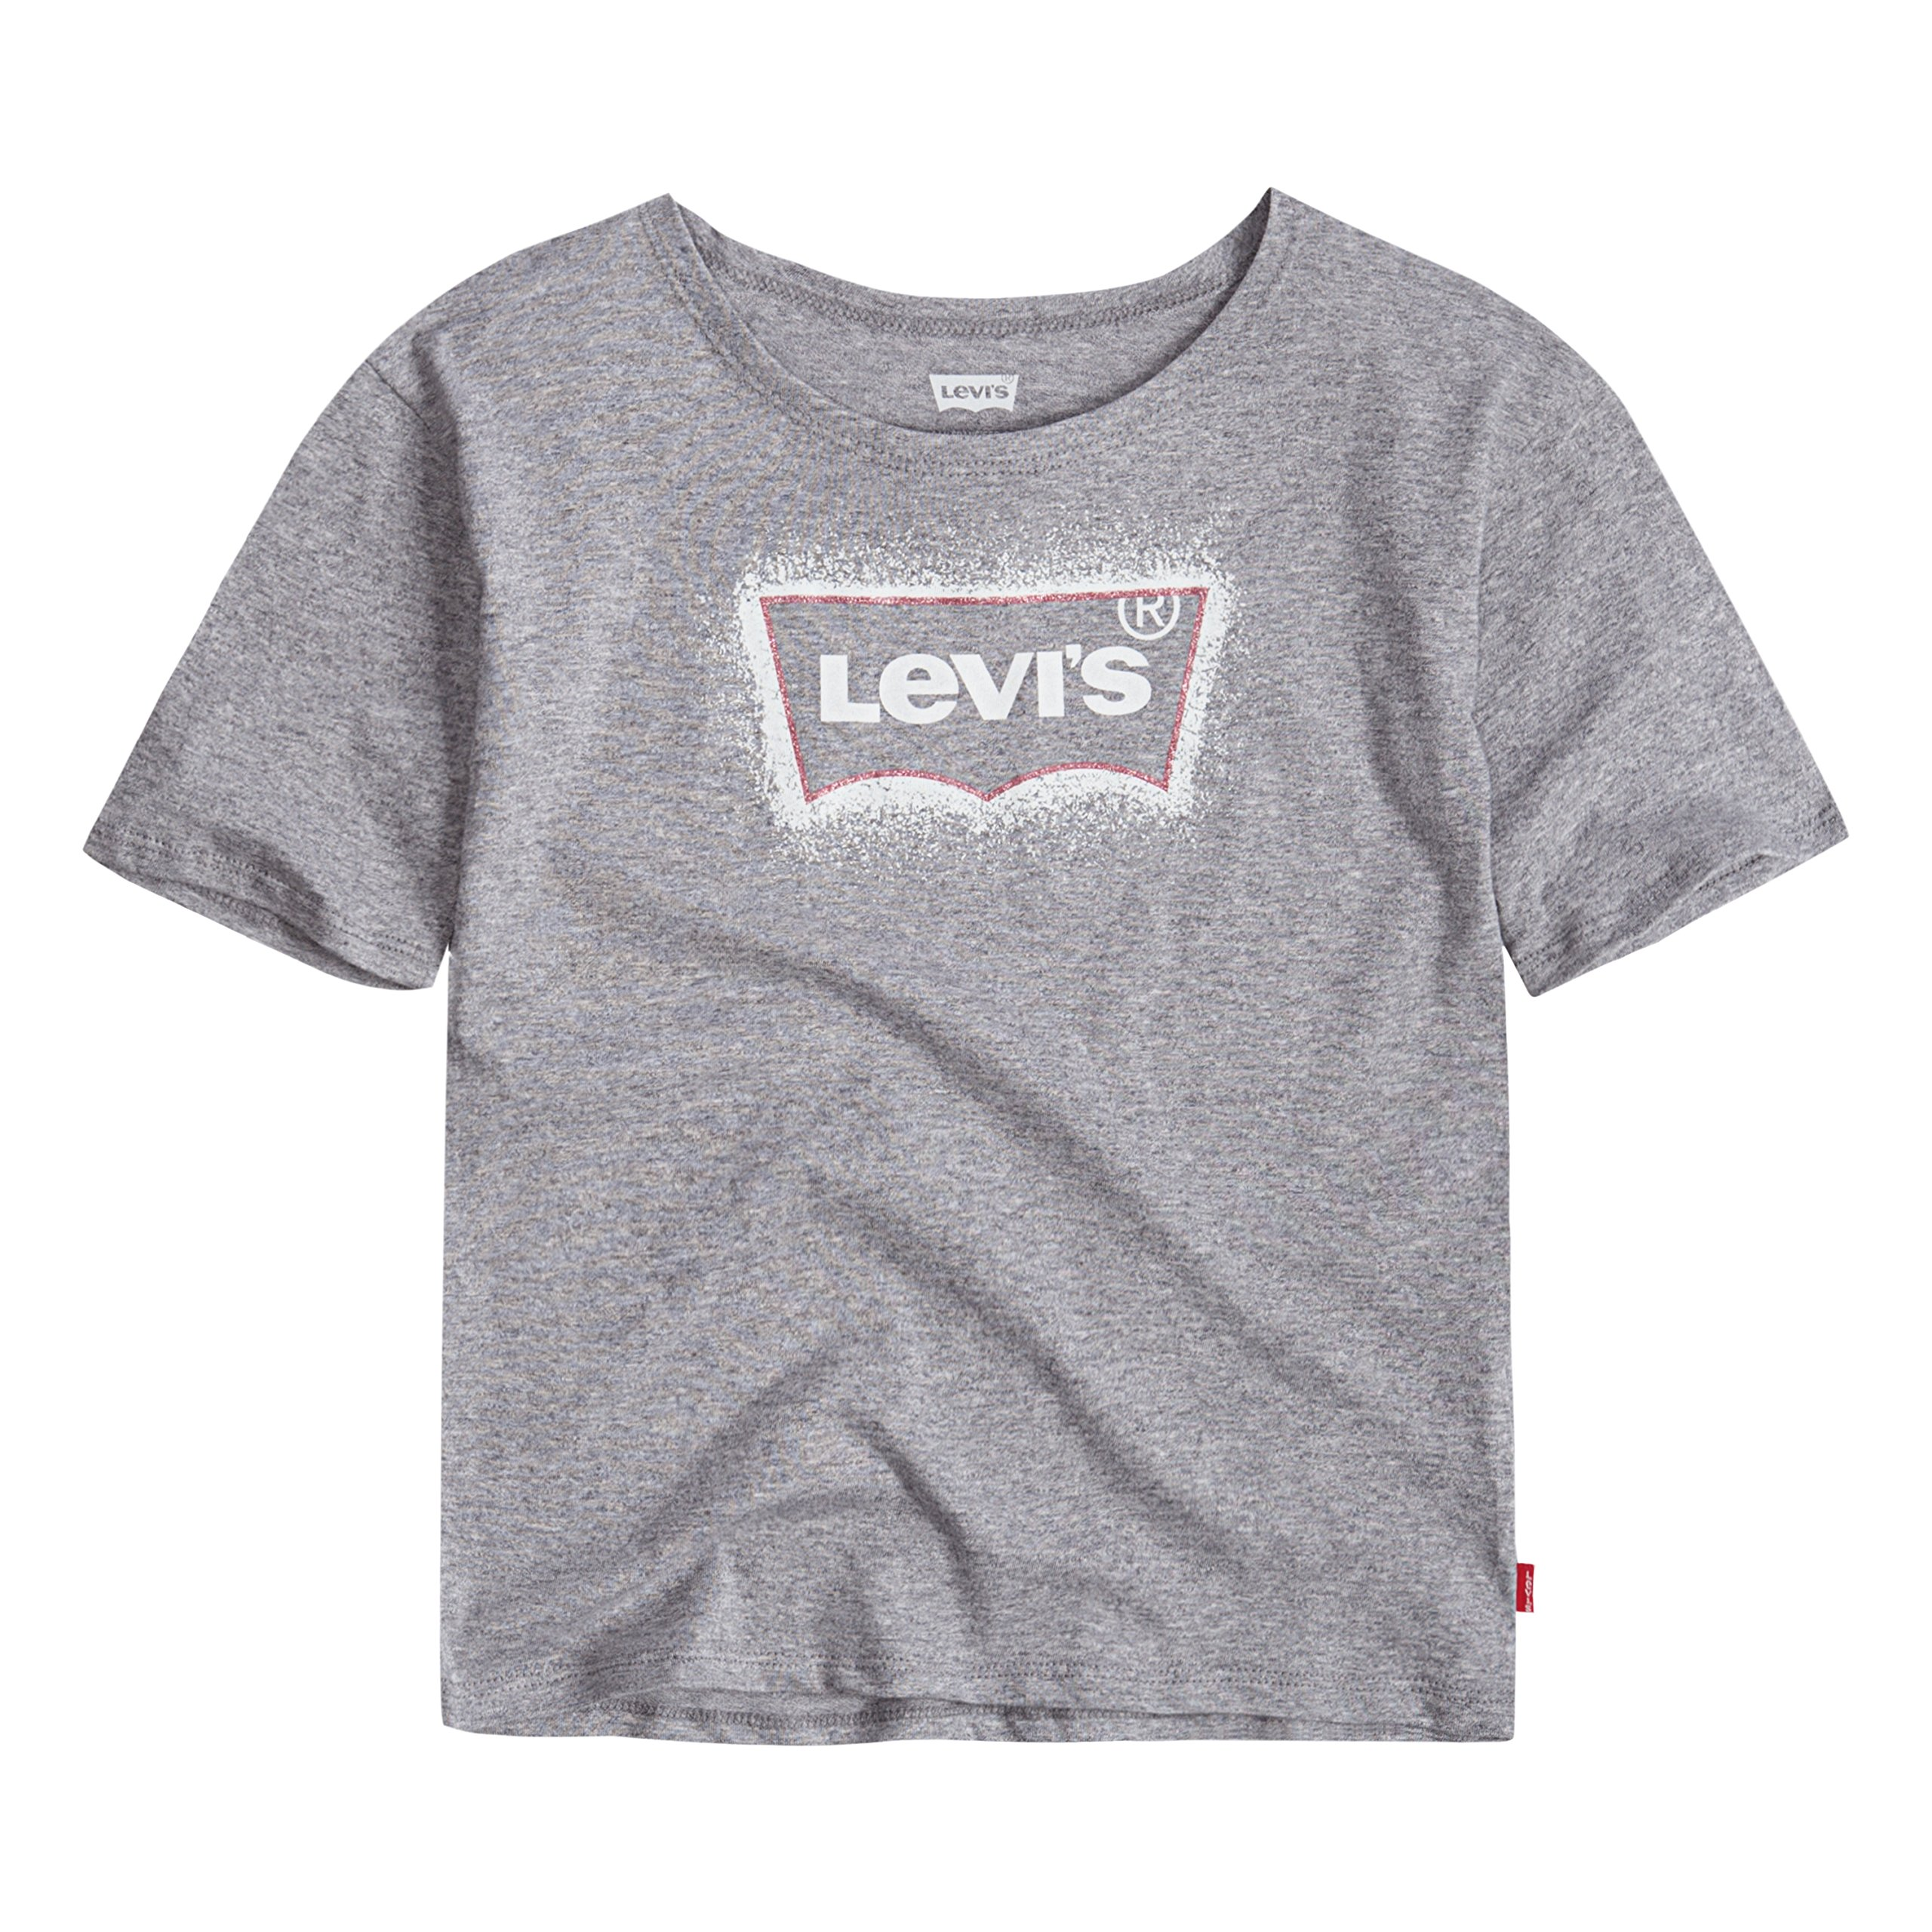 Levi's Girls Batwing T-Shirt, Marled Grey, XL